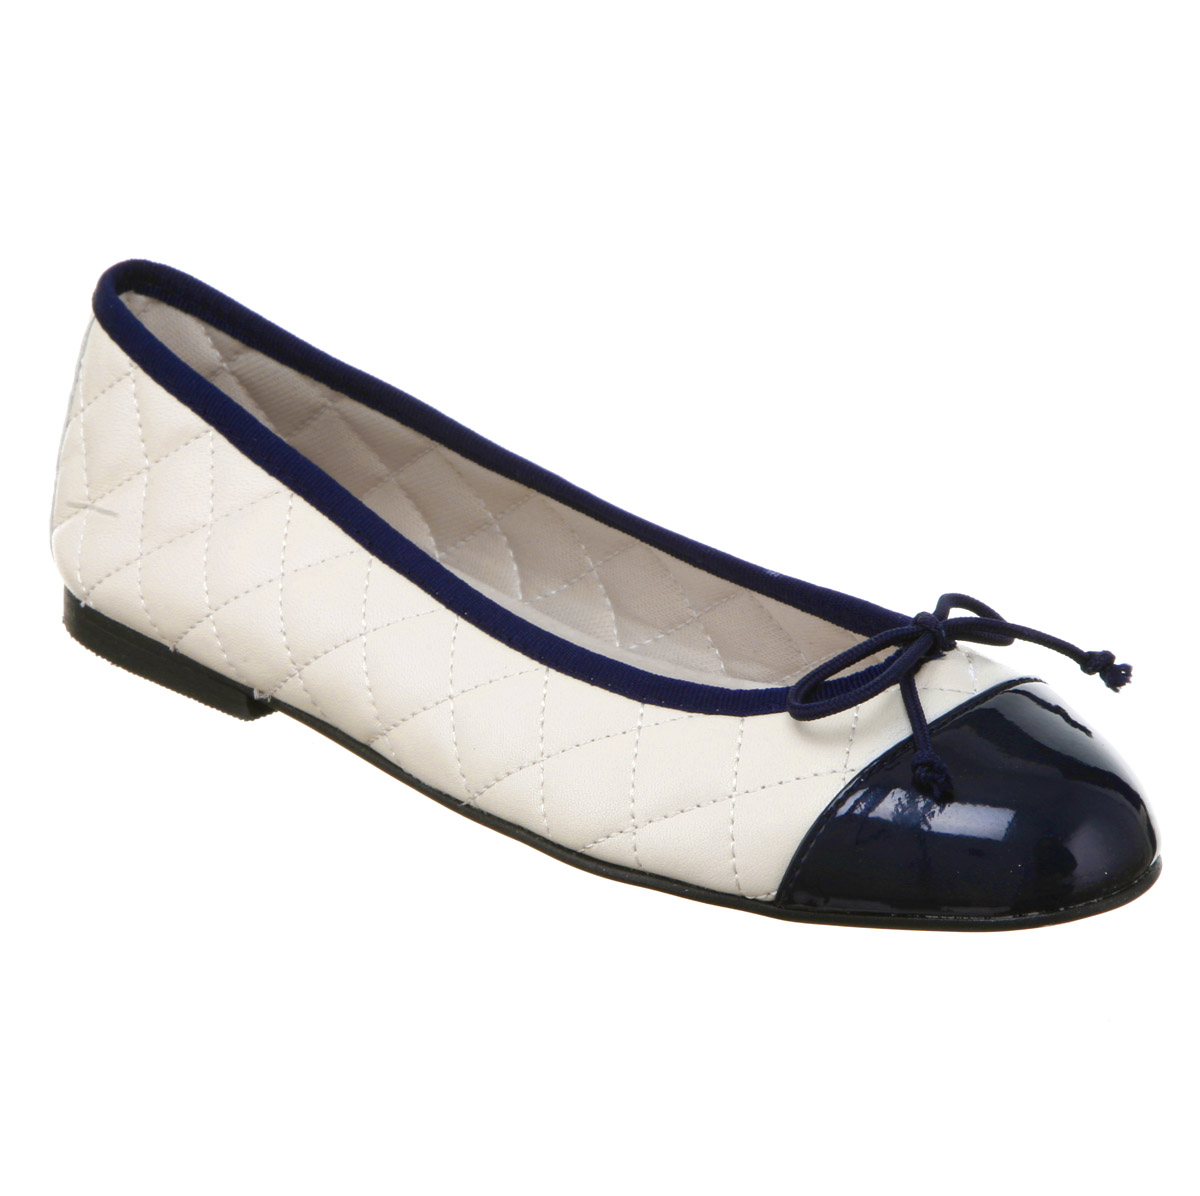 9682c69d3 Womens Office Girl Cecilia Toe-cap Ballerina Navy Blue Patent/cream ...